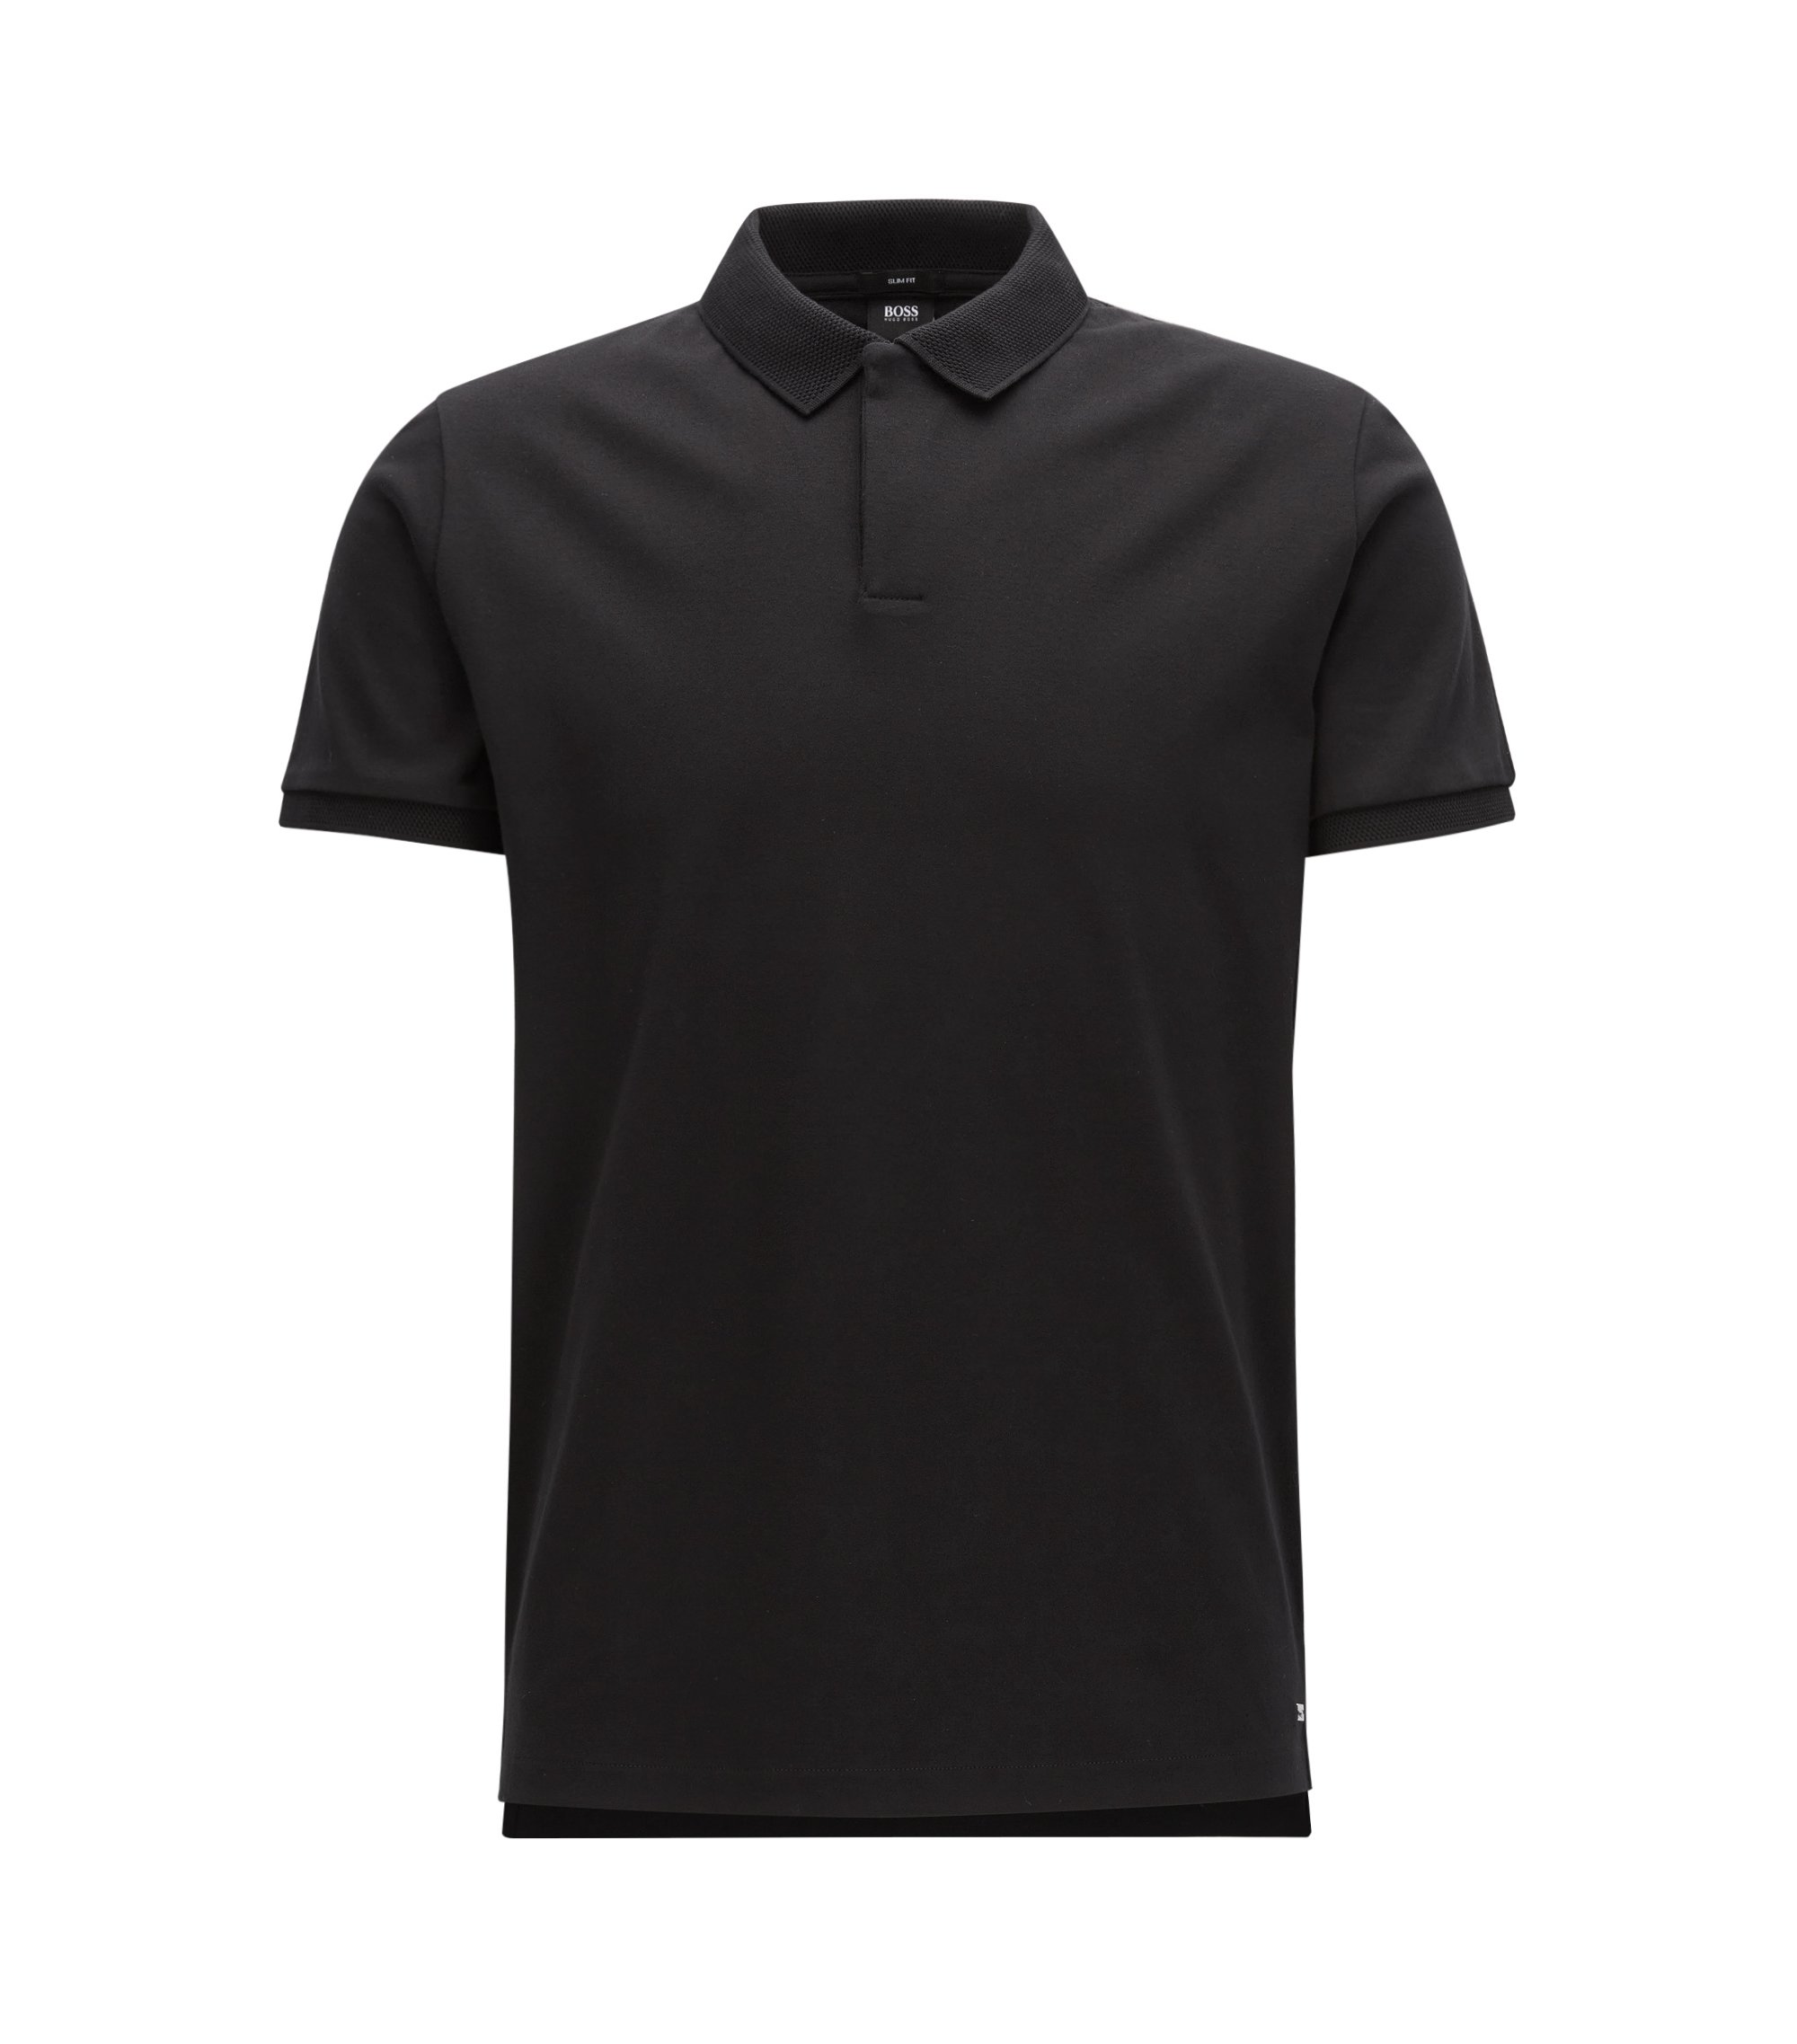 Slim-fit polo shirt in interlock cotton from the Mercedes-Benz Collection, Black